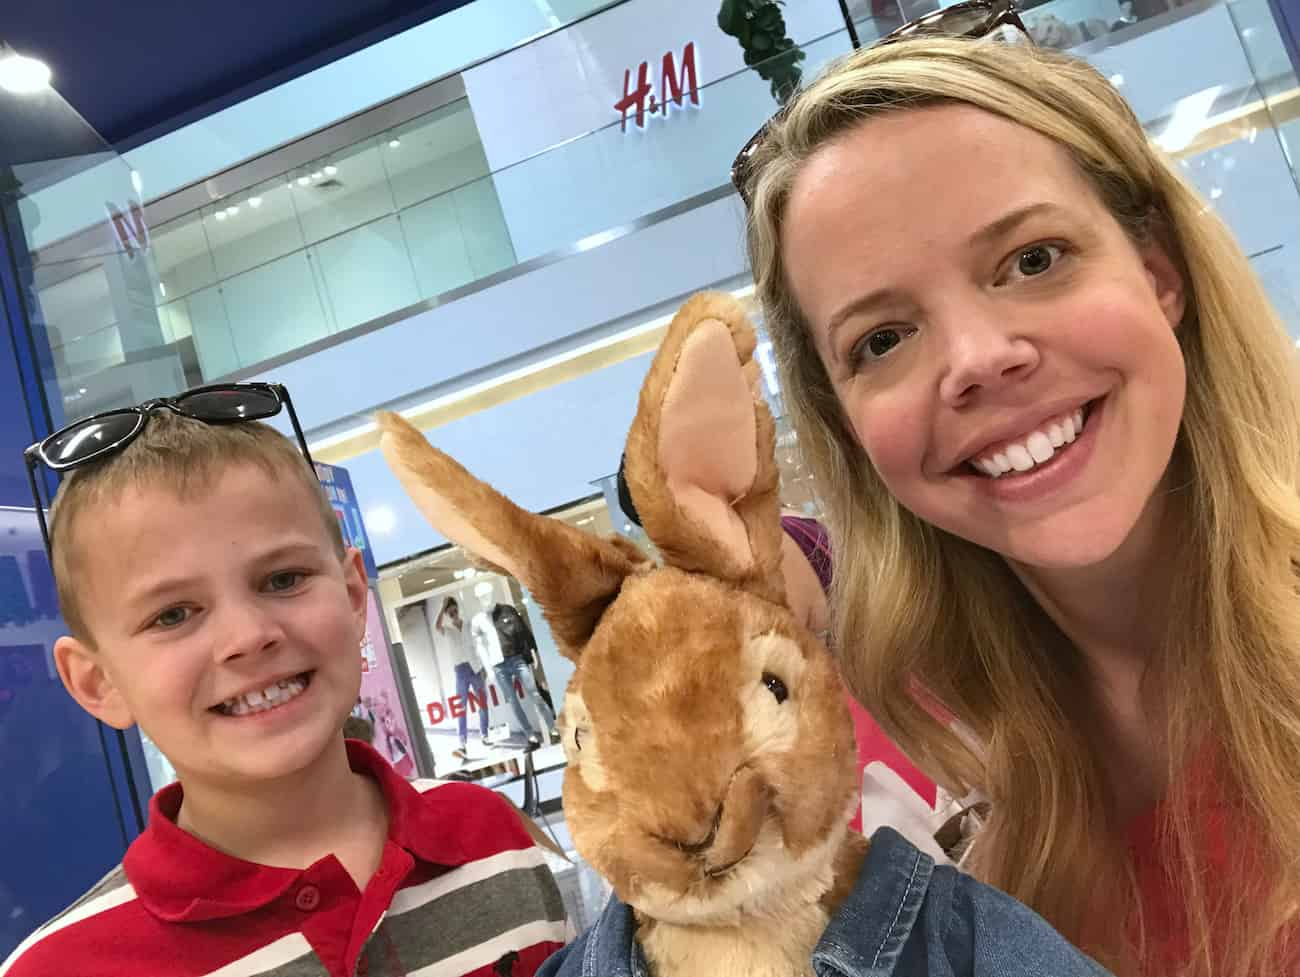 Peter Rabbit at build a bear workshop with Marybeth Hamilton